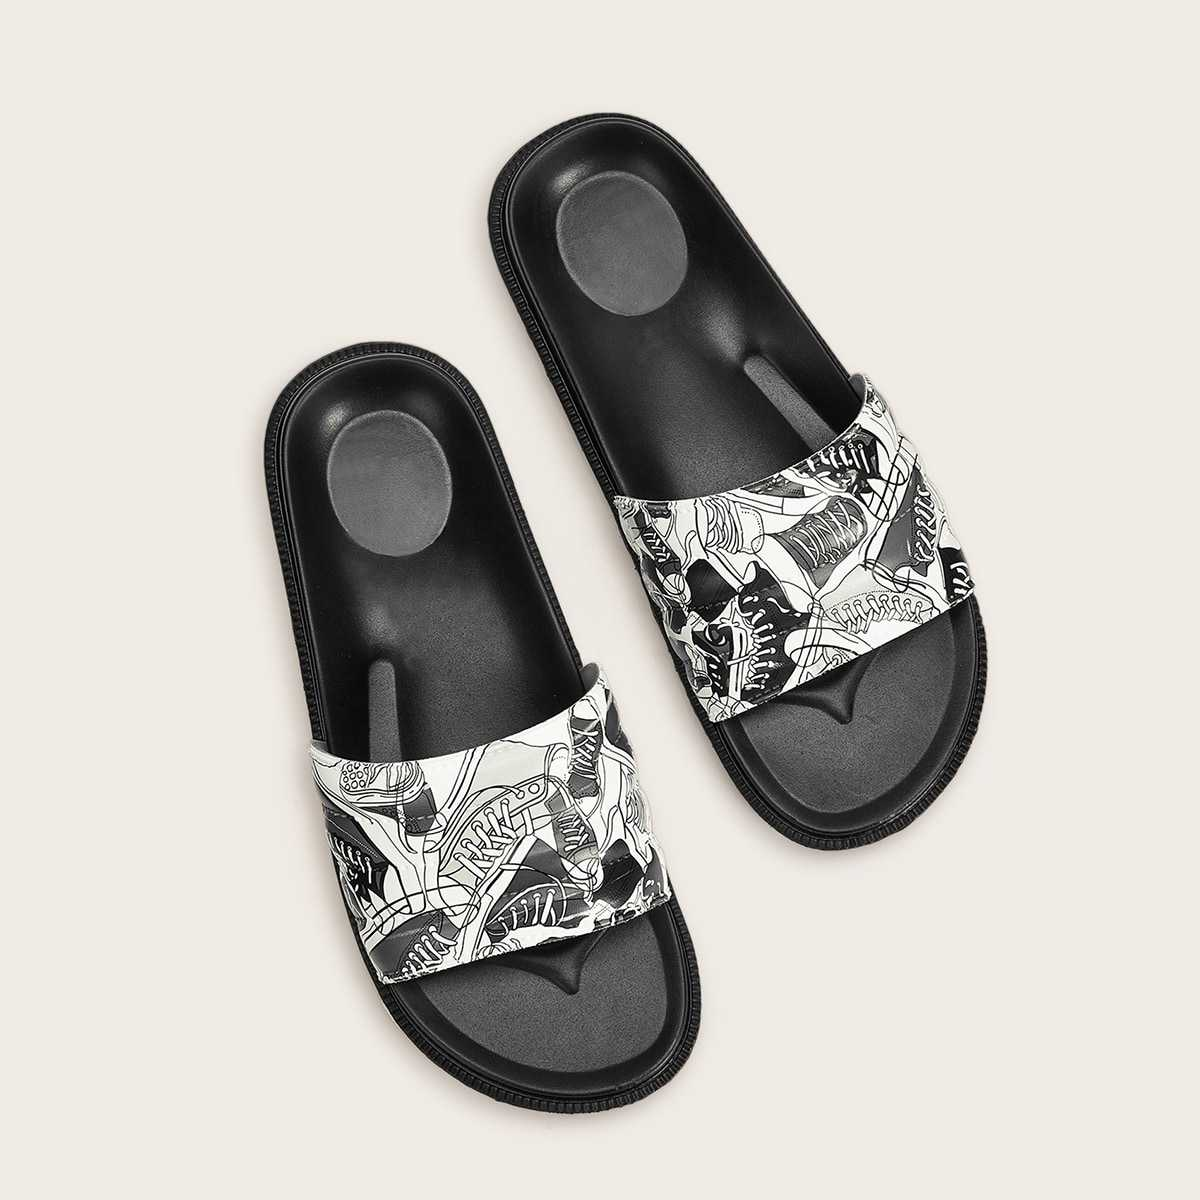 Guys Open Toe Wide Fit Sliders in Black and White by ROMWE on GOOFASH